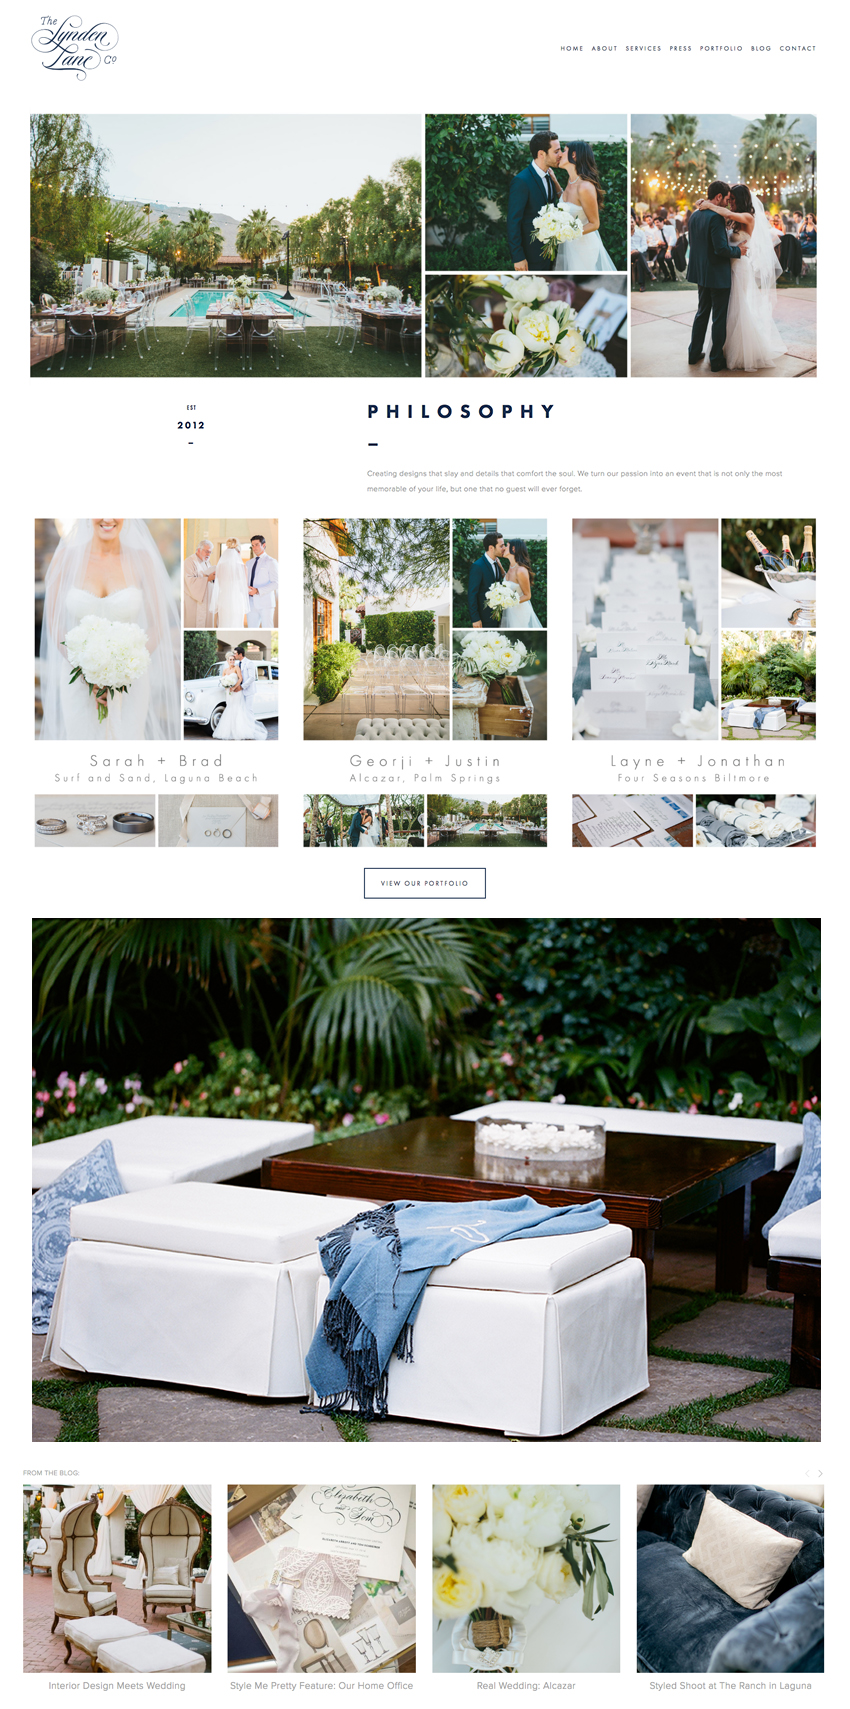 Website Design for The Lynden Lane Company | The Editor's Touch | Squarespace Website Designer